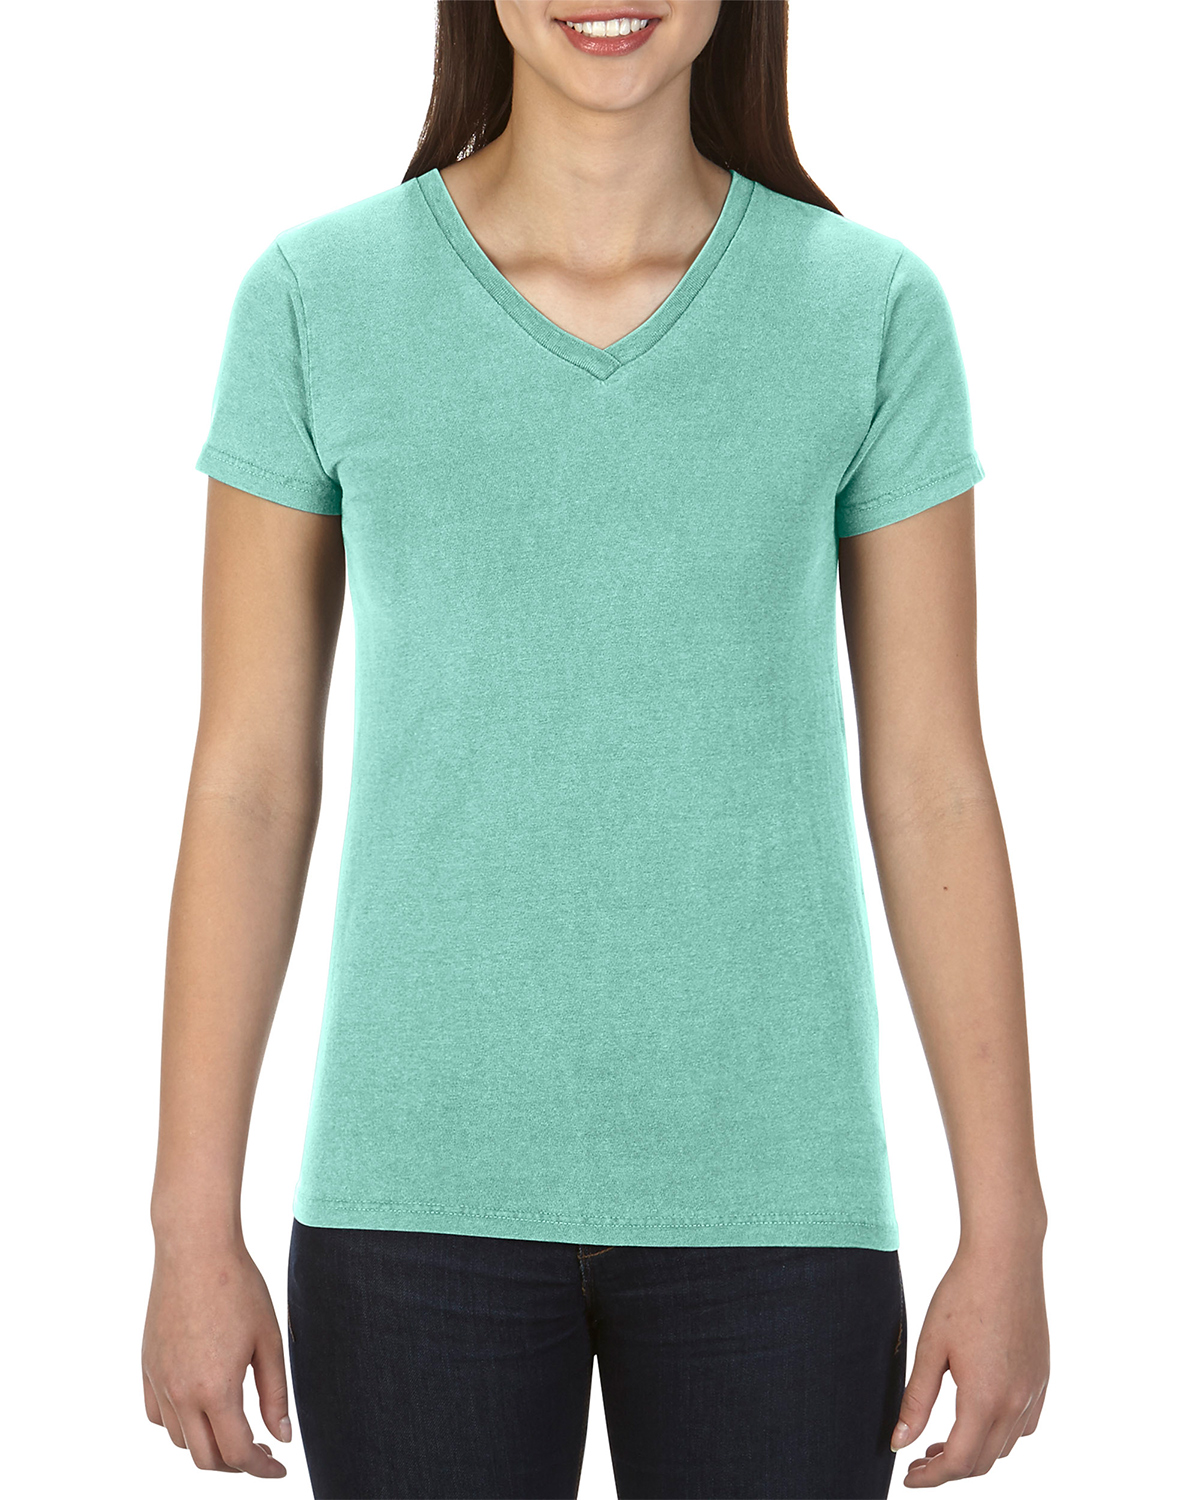 Comfort Colors Drop Ship - C3099 Ladies' 4.8 oz. Garment-...